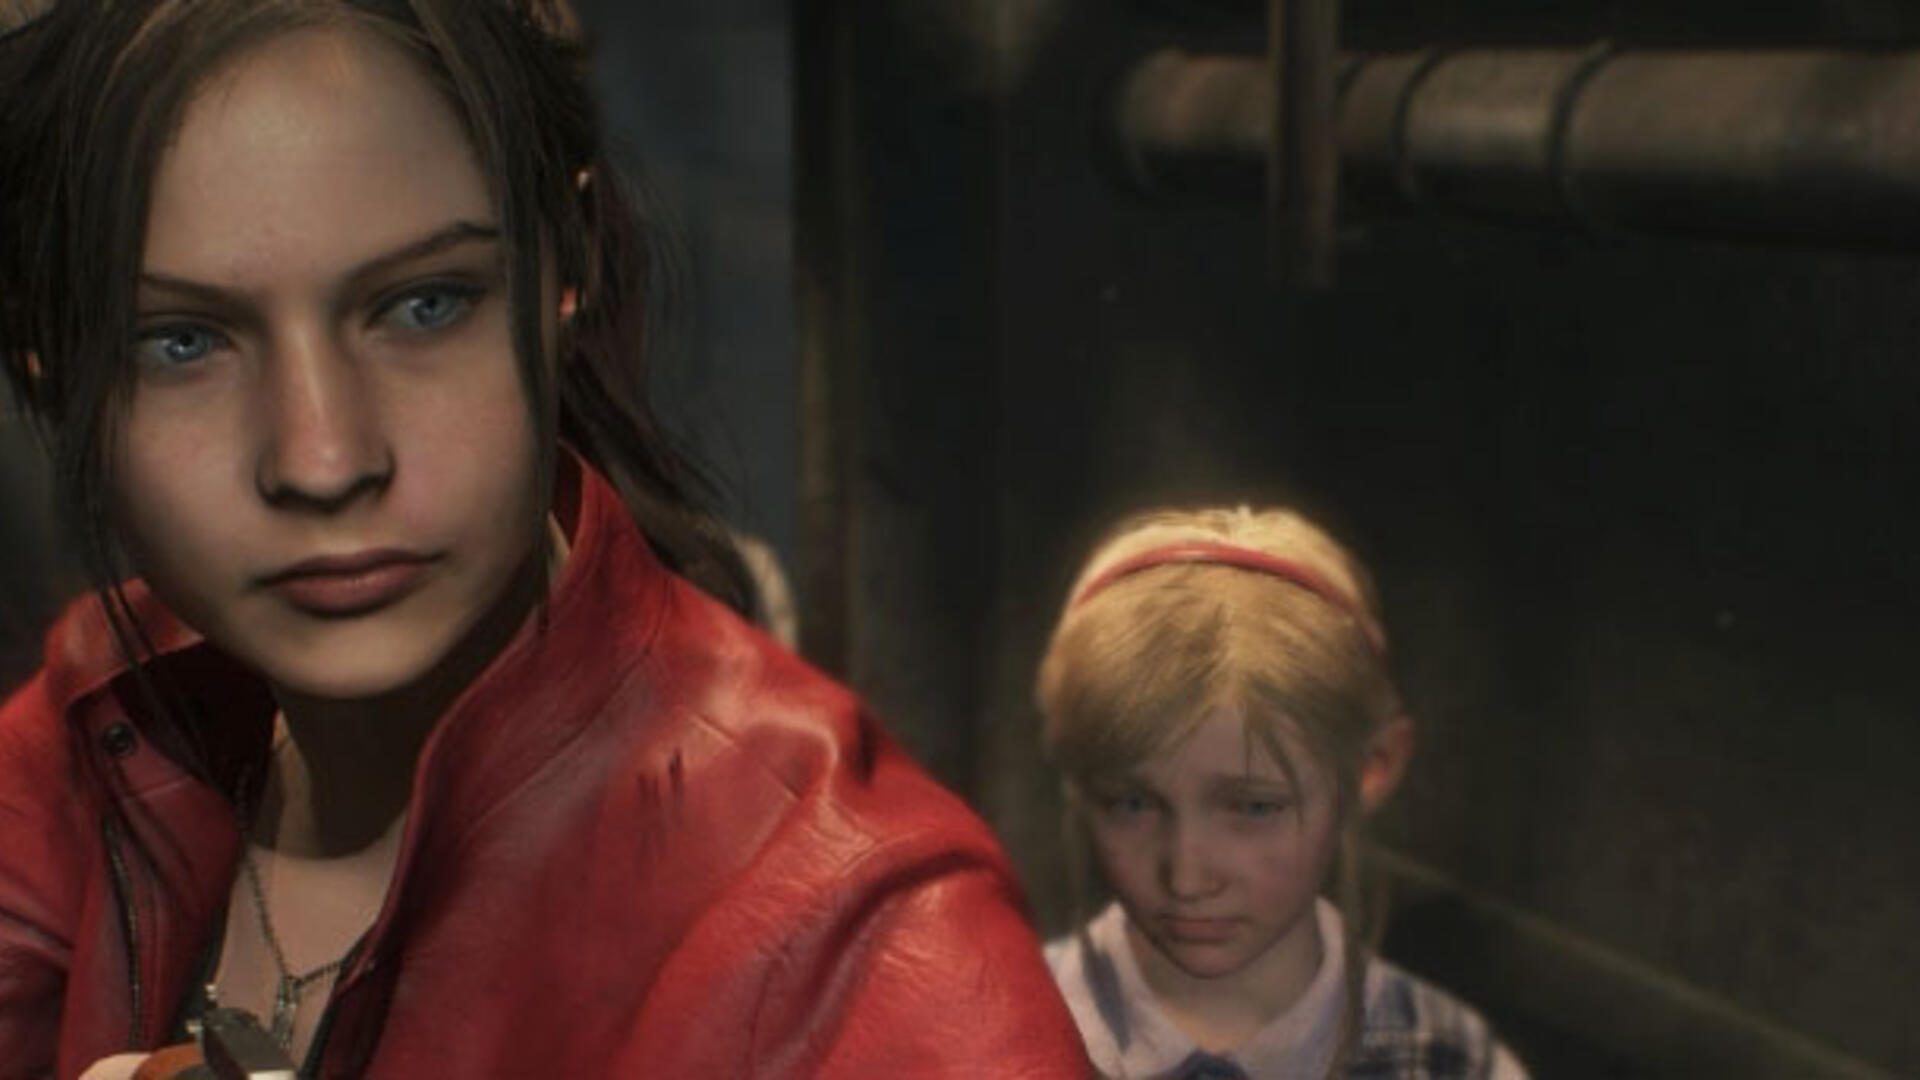 Resident Evil 2 Remake's Claire Campaign Is a Classic Mix of Action and Horror, Erasing Memories of the Infamous Resident Evil 6